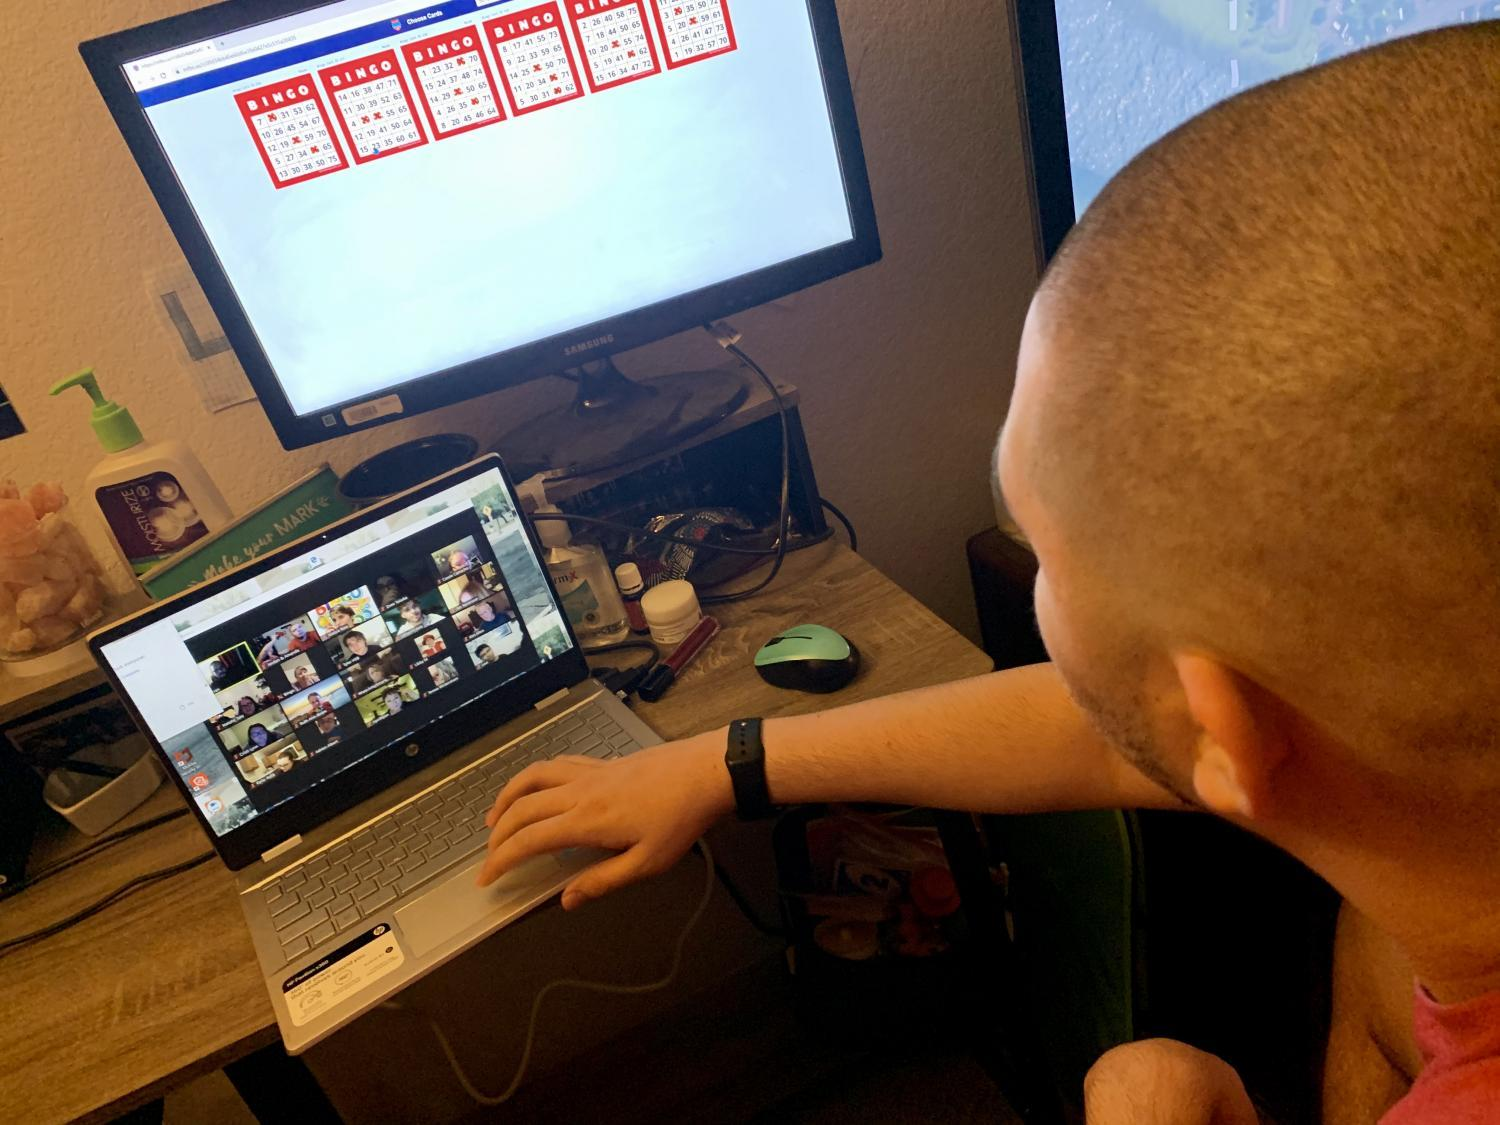 Jordan Wright has grown more computer savvy while learning from home, due to the pandemic.